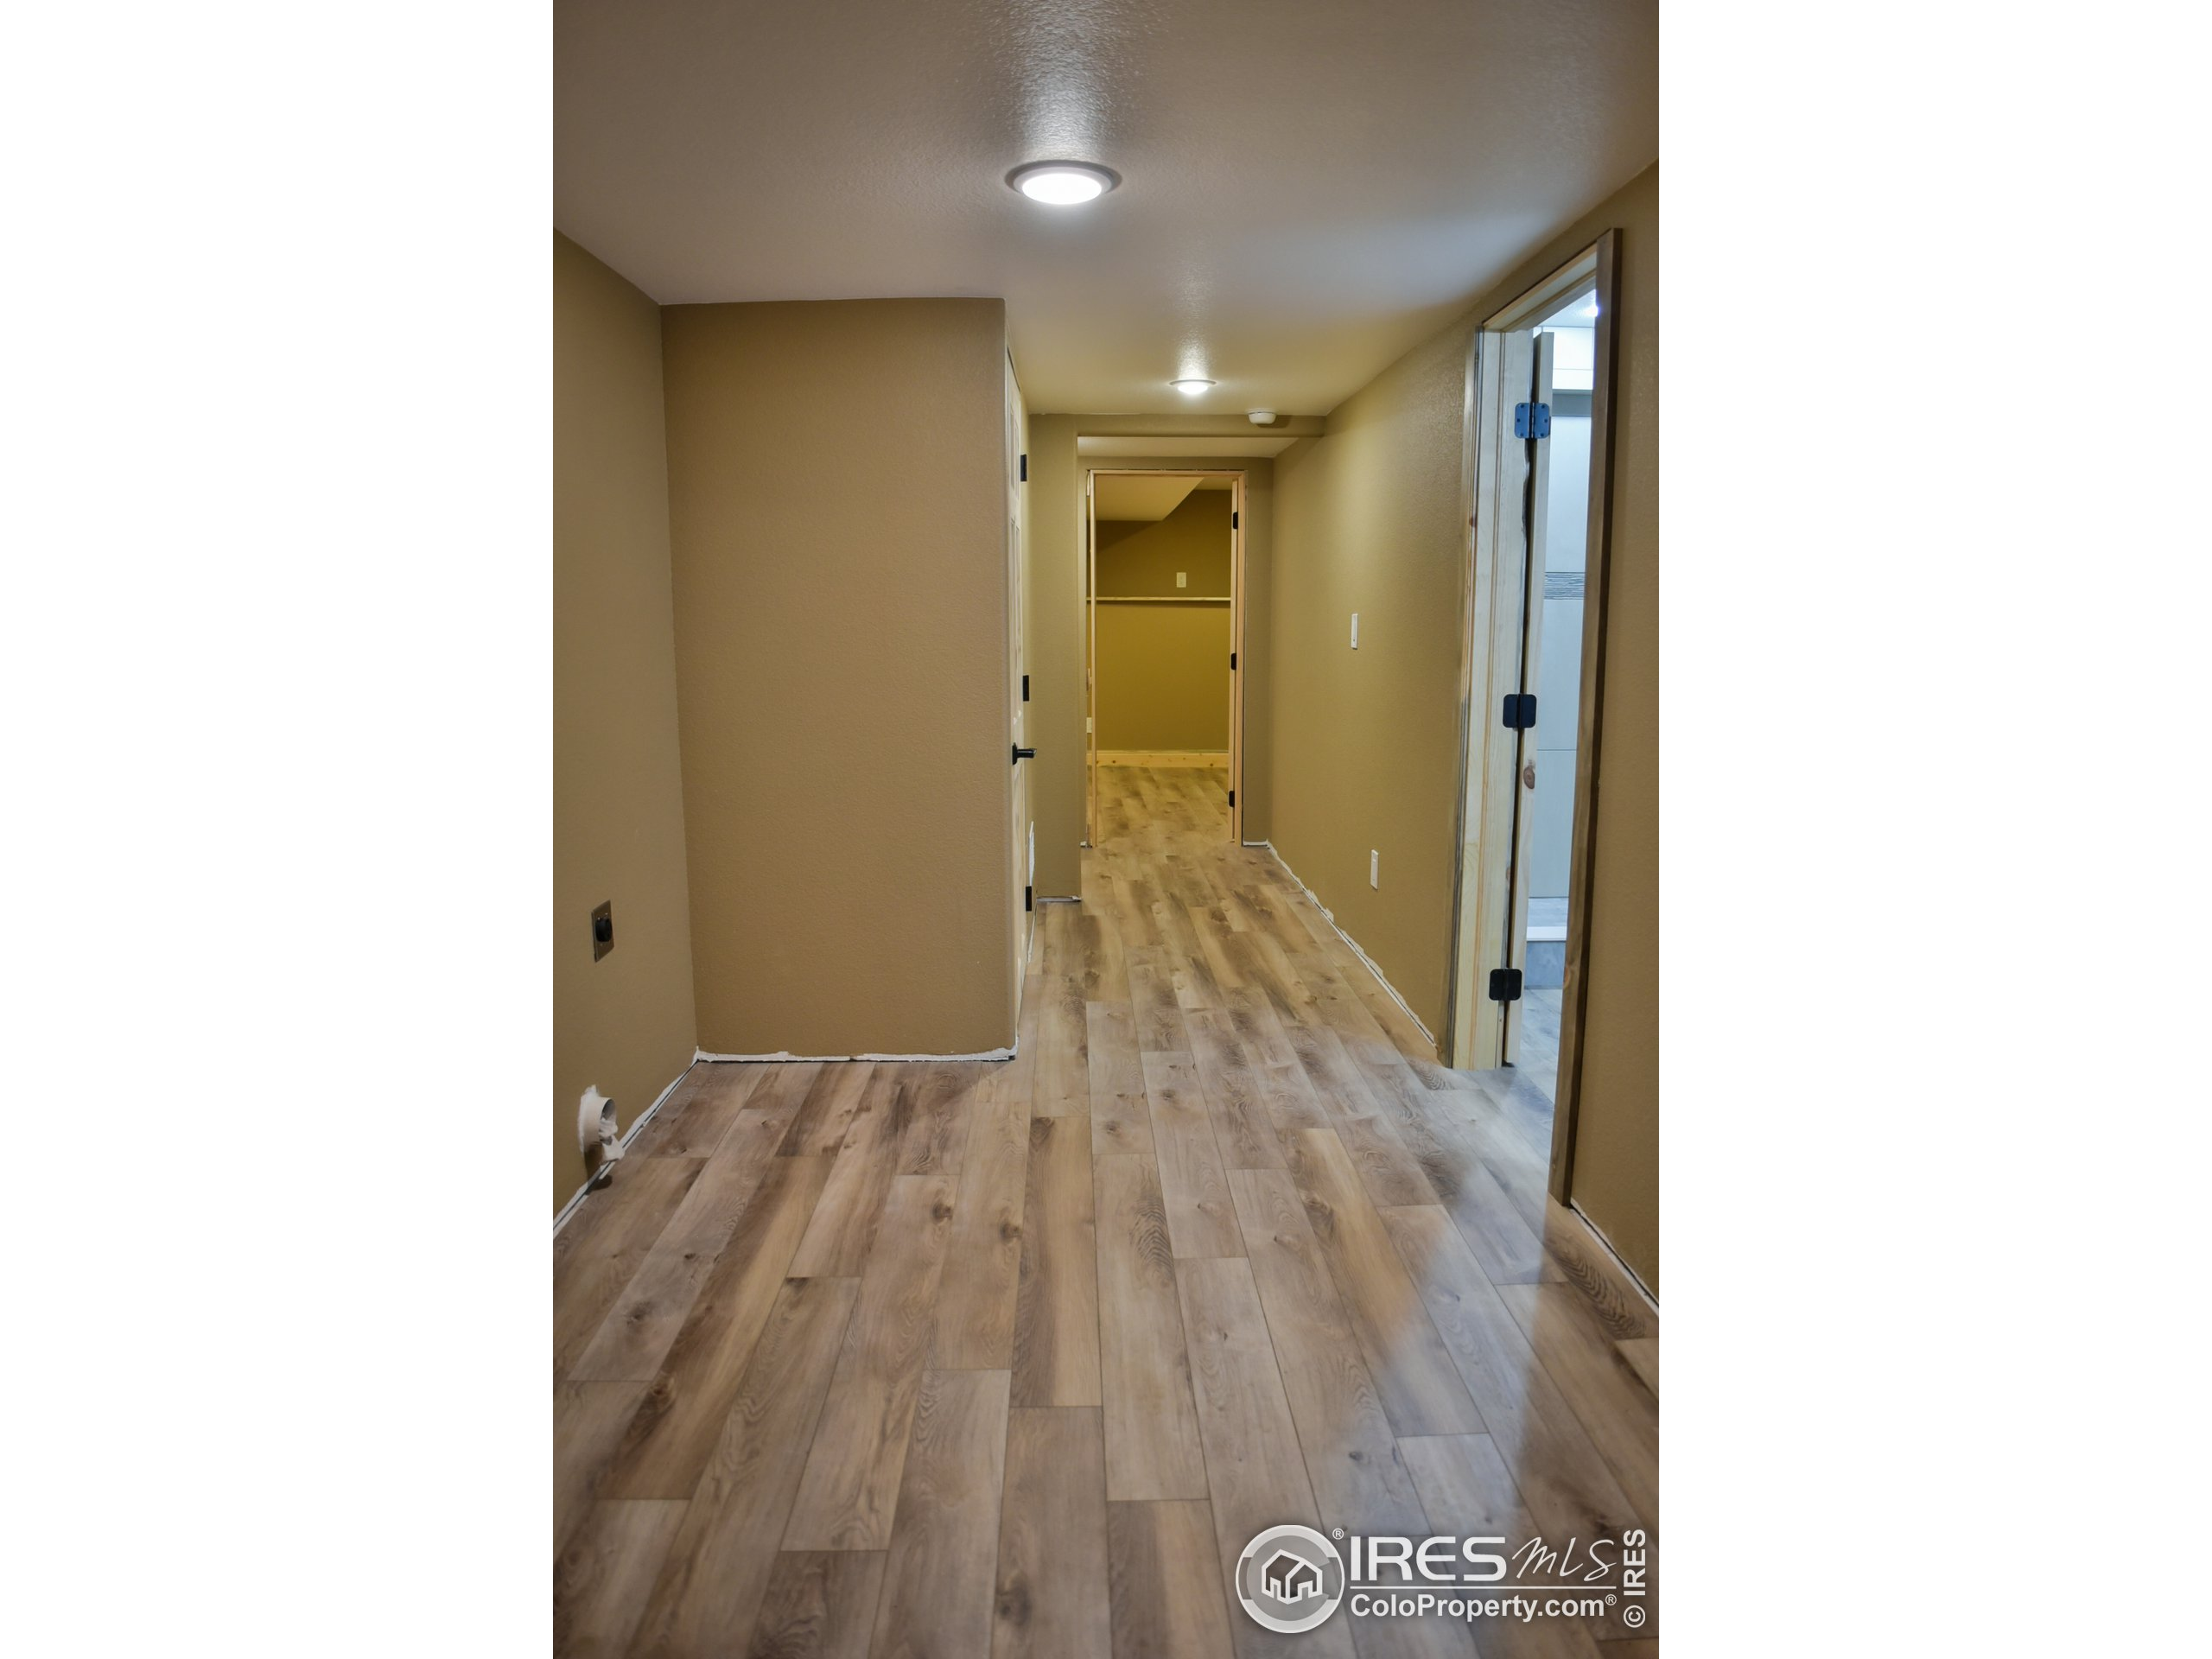 1 of 2 storage room/study/offices in the basement.